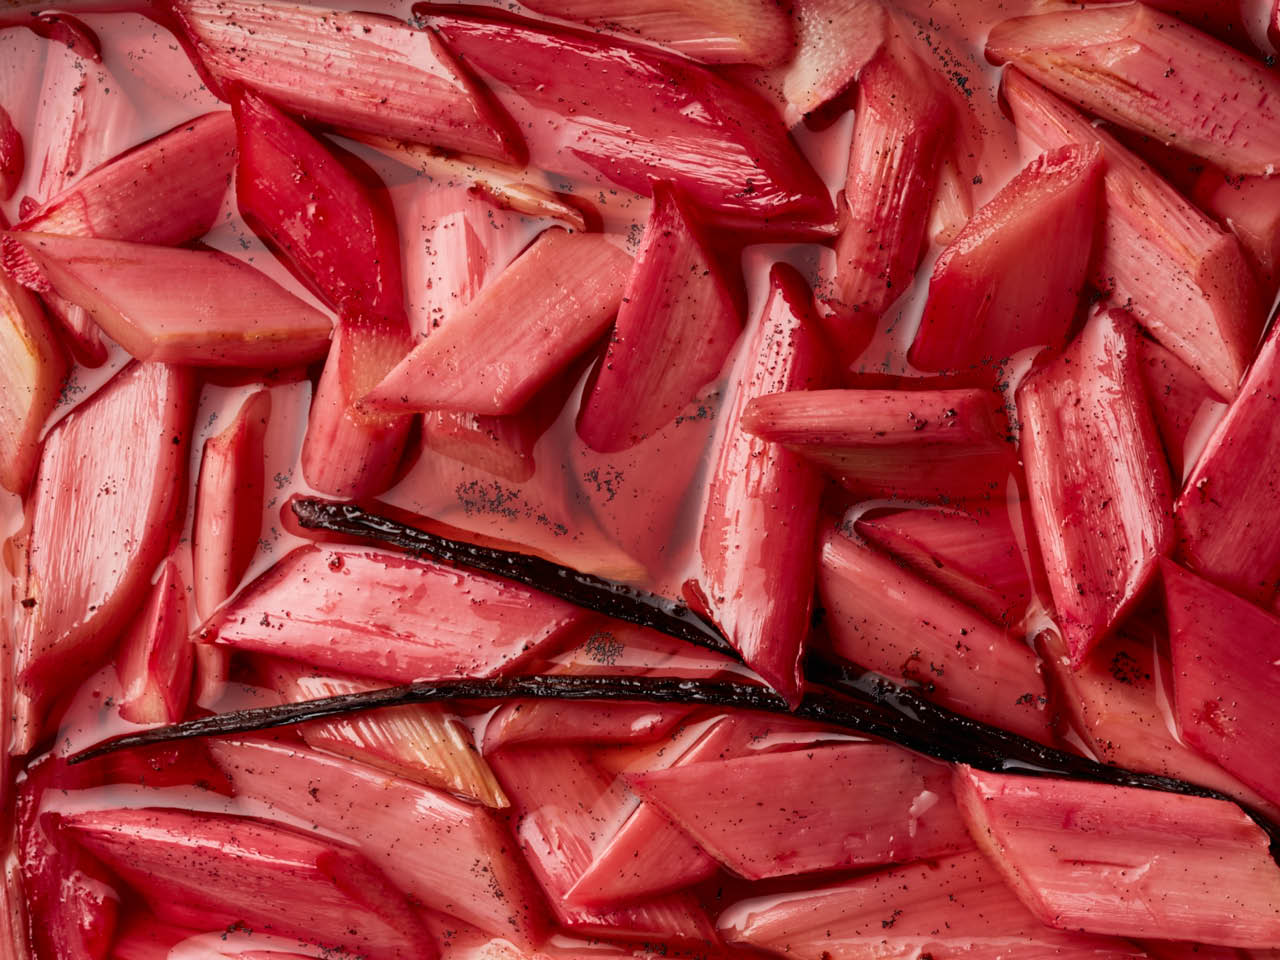 Rhubarb recipes: poached rhubarb